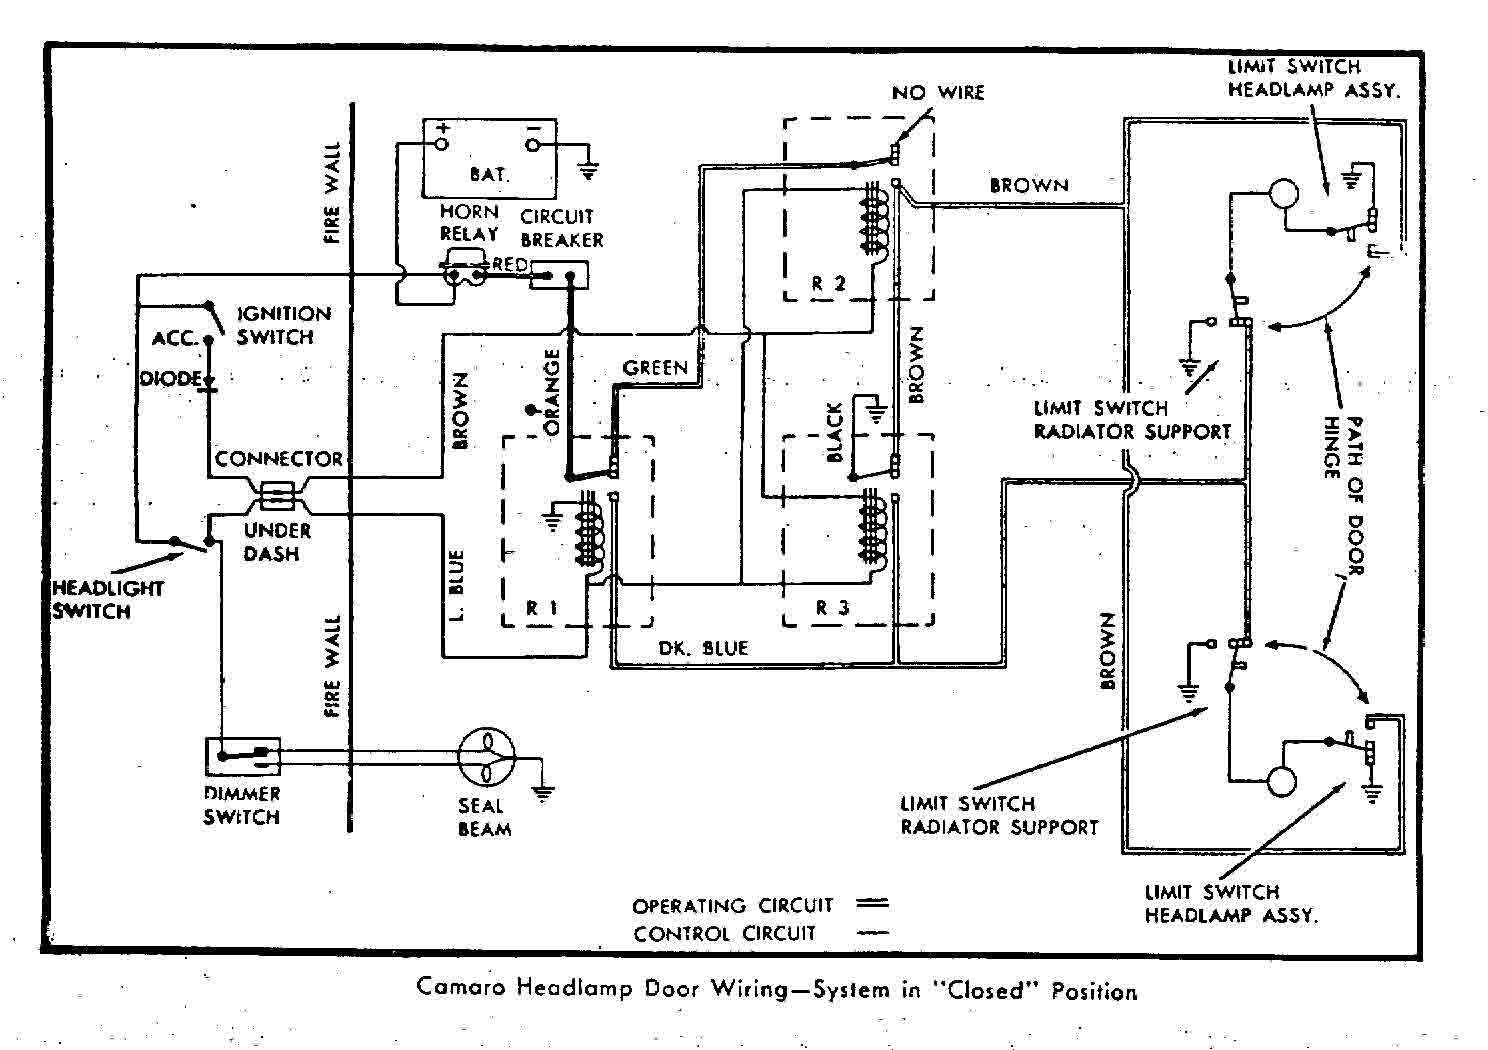 1967 Camaro Rs Headlight Switch Wiring Diagram Detailed Schematic Ford Wire 67 Doors Diagrams